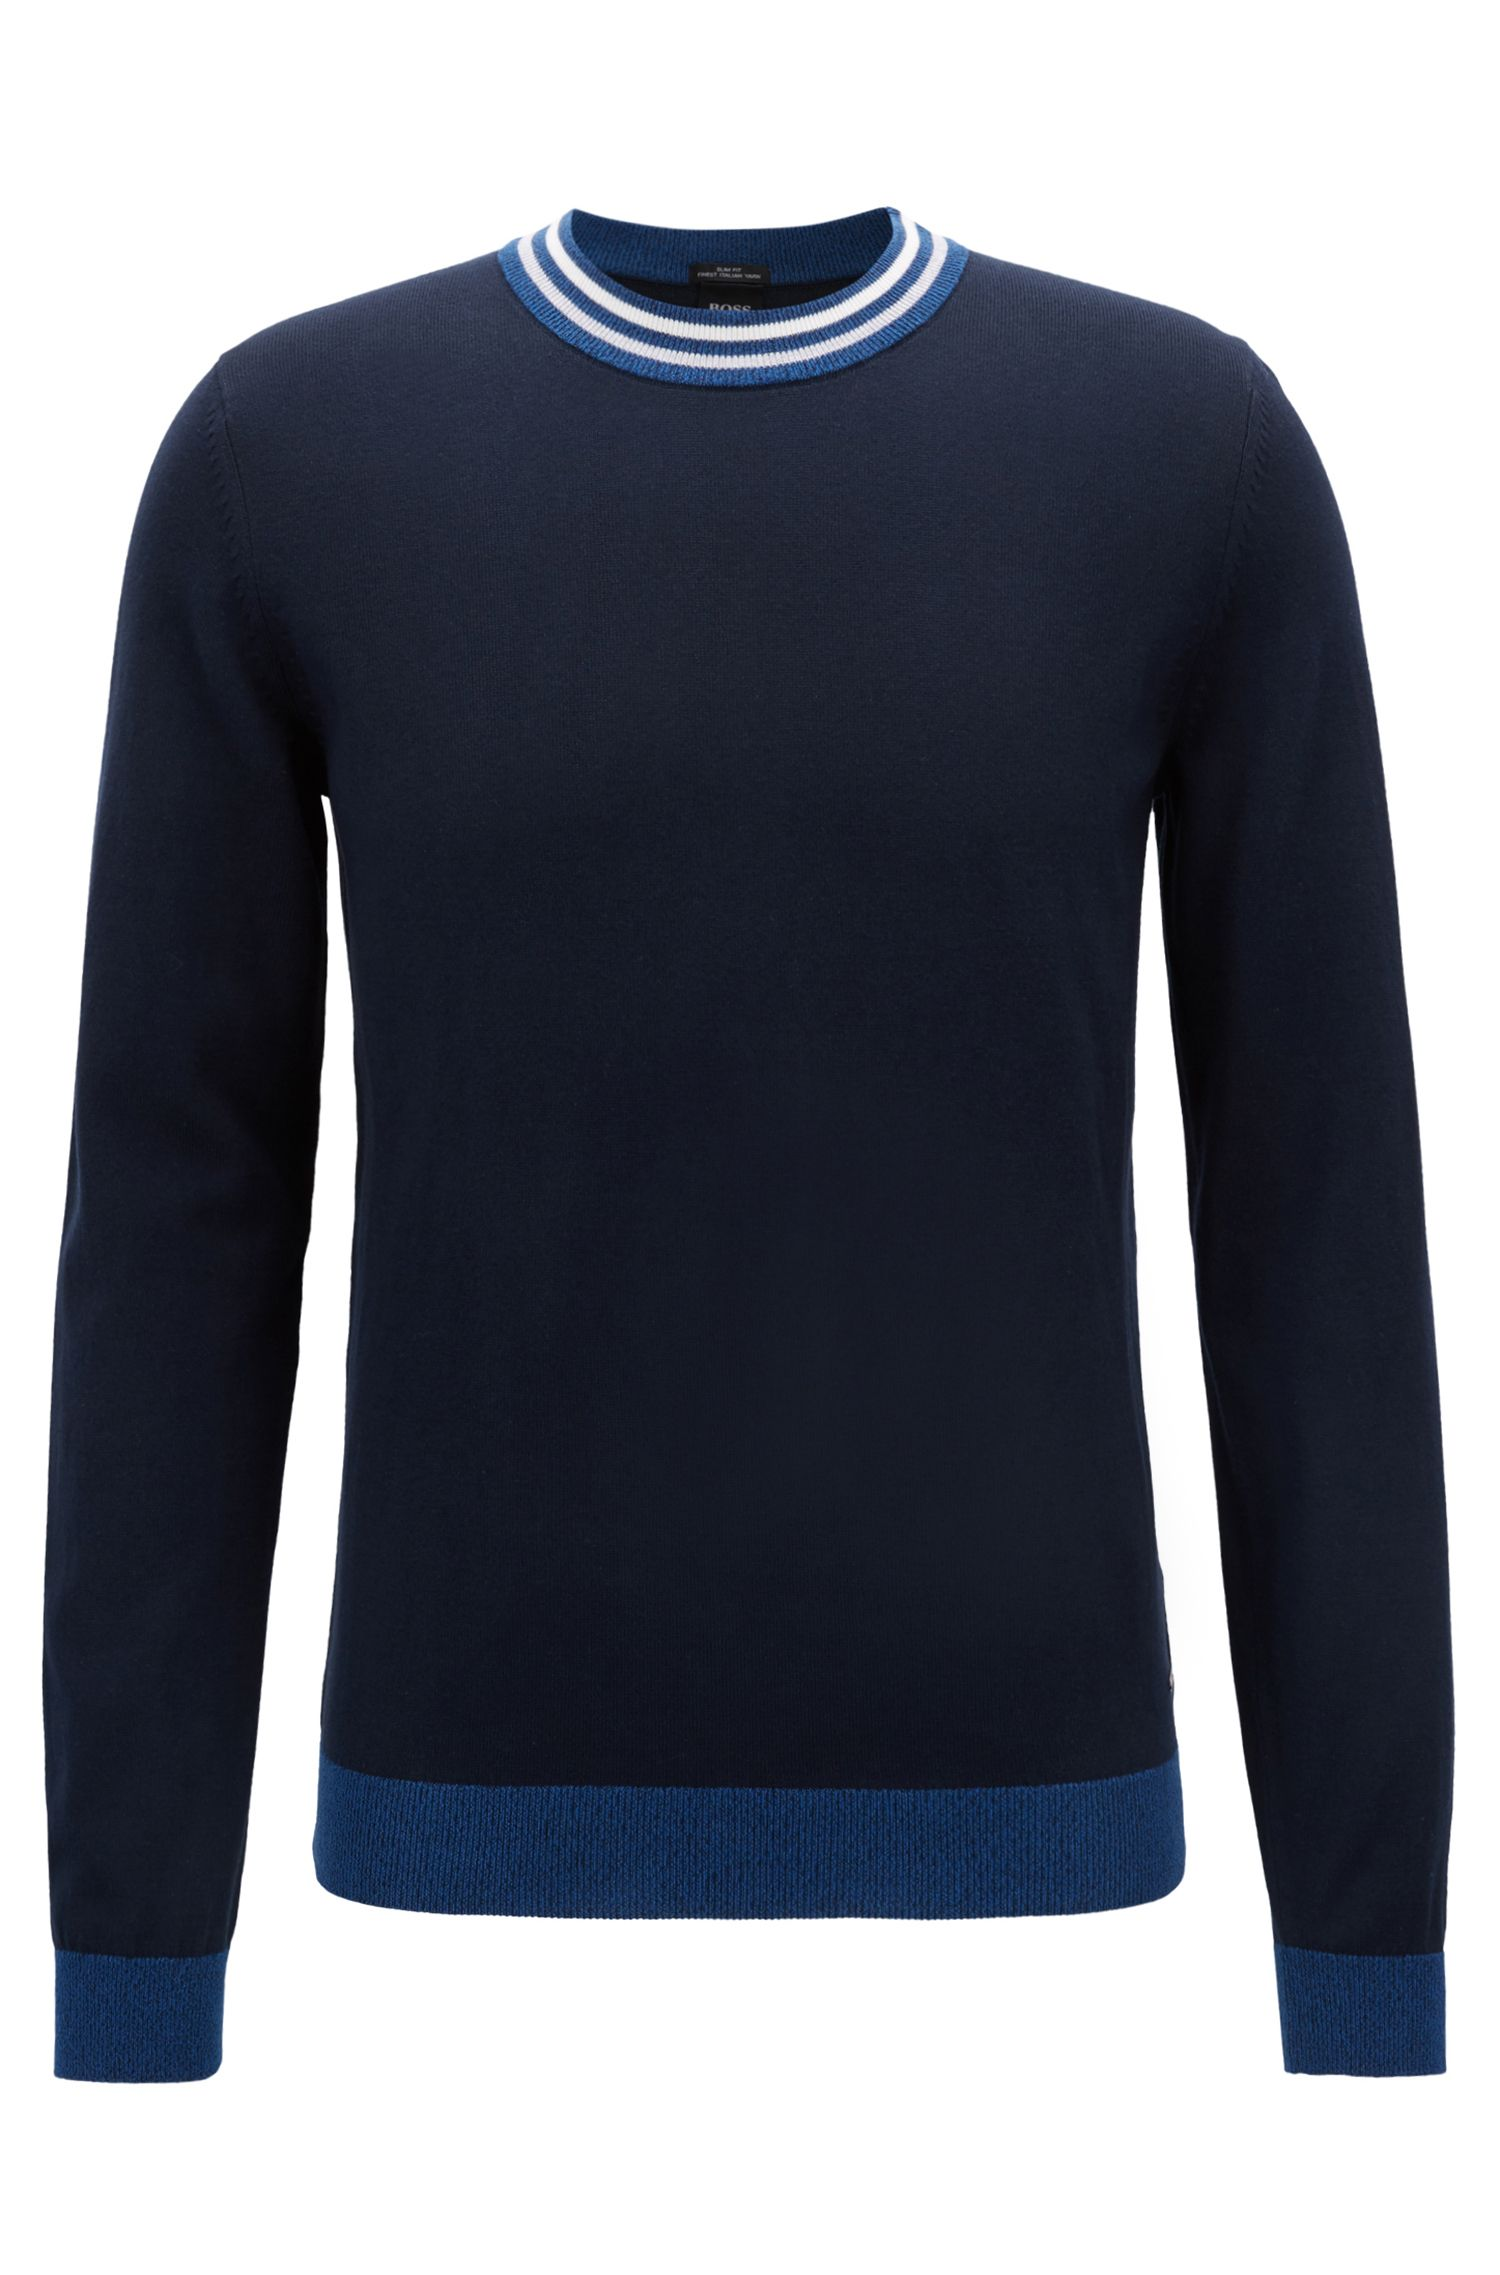 Slim-fit cotton sweater with striped crew neck